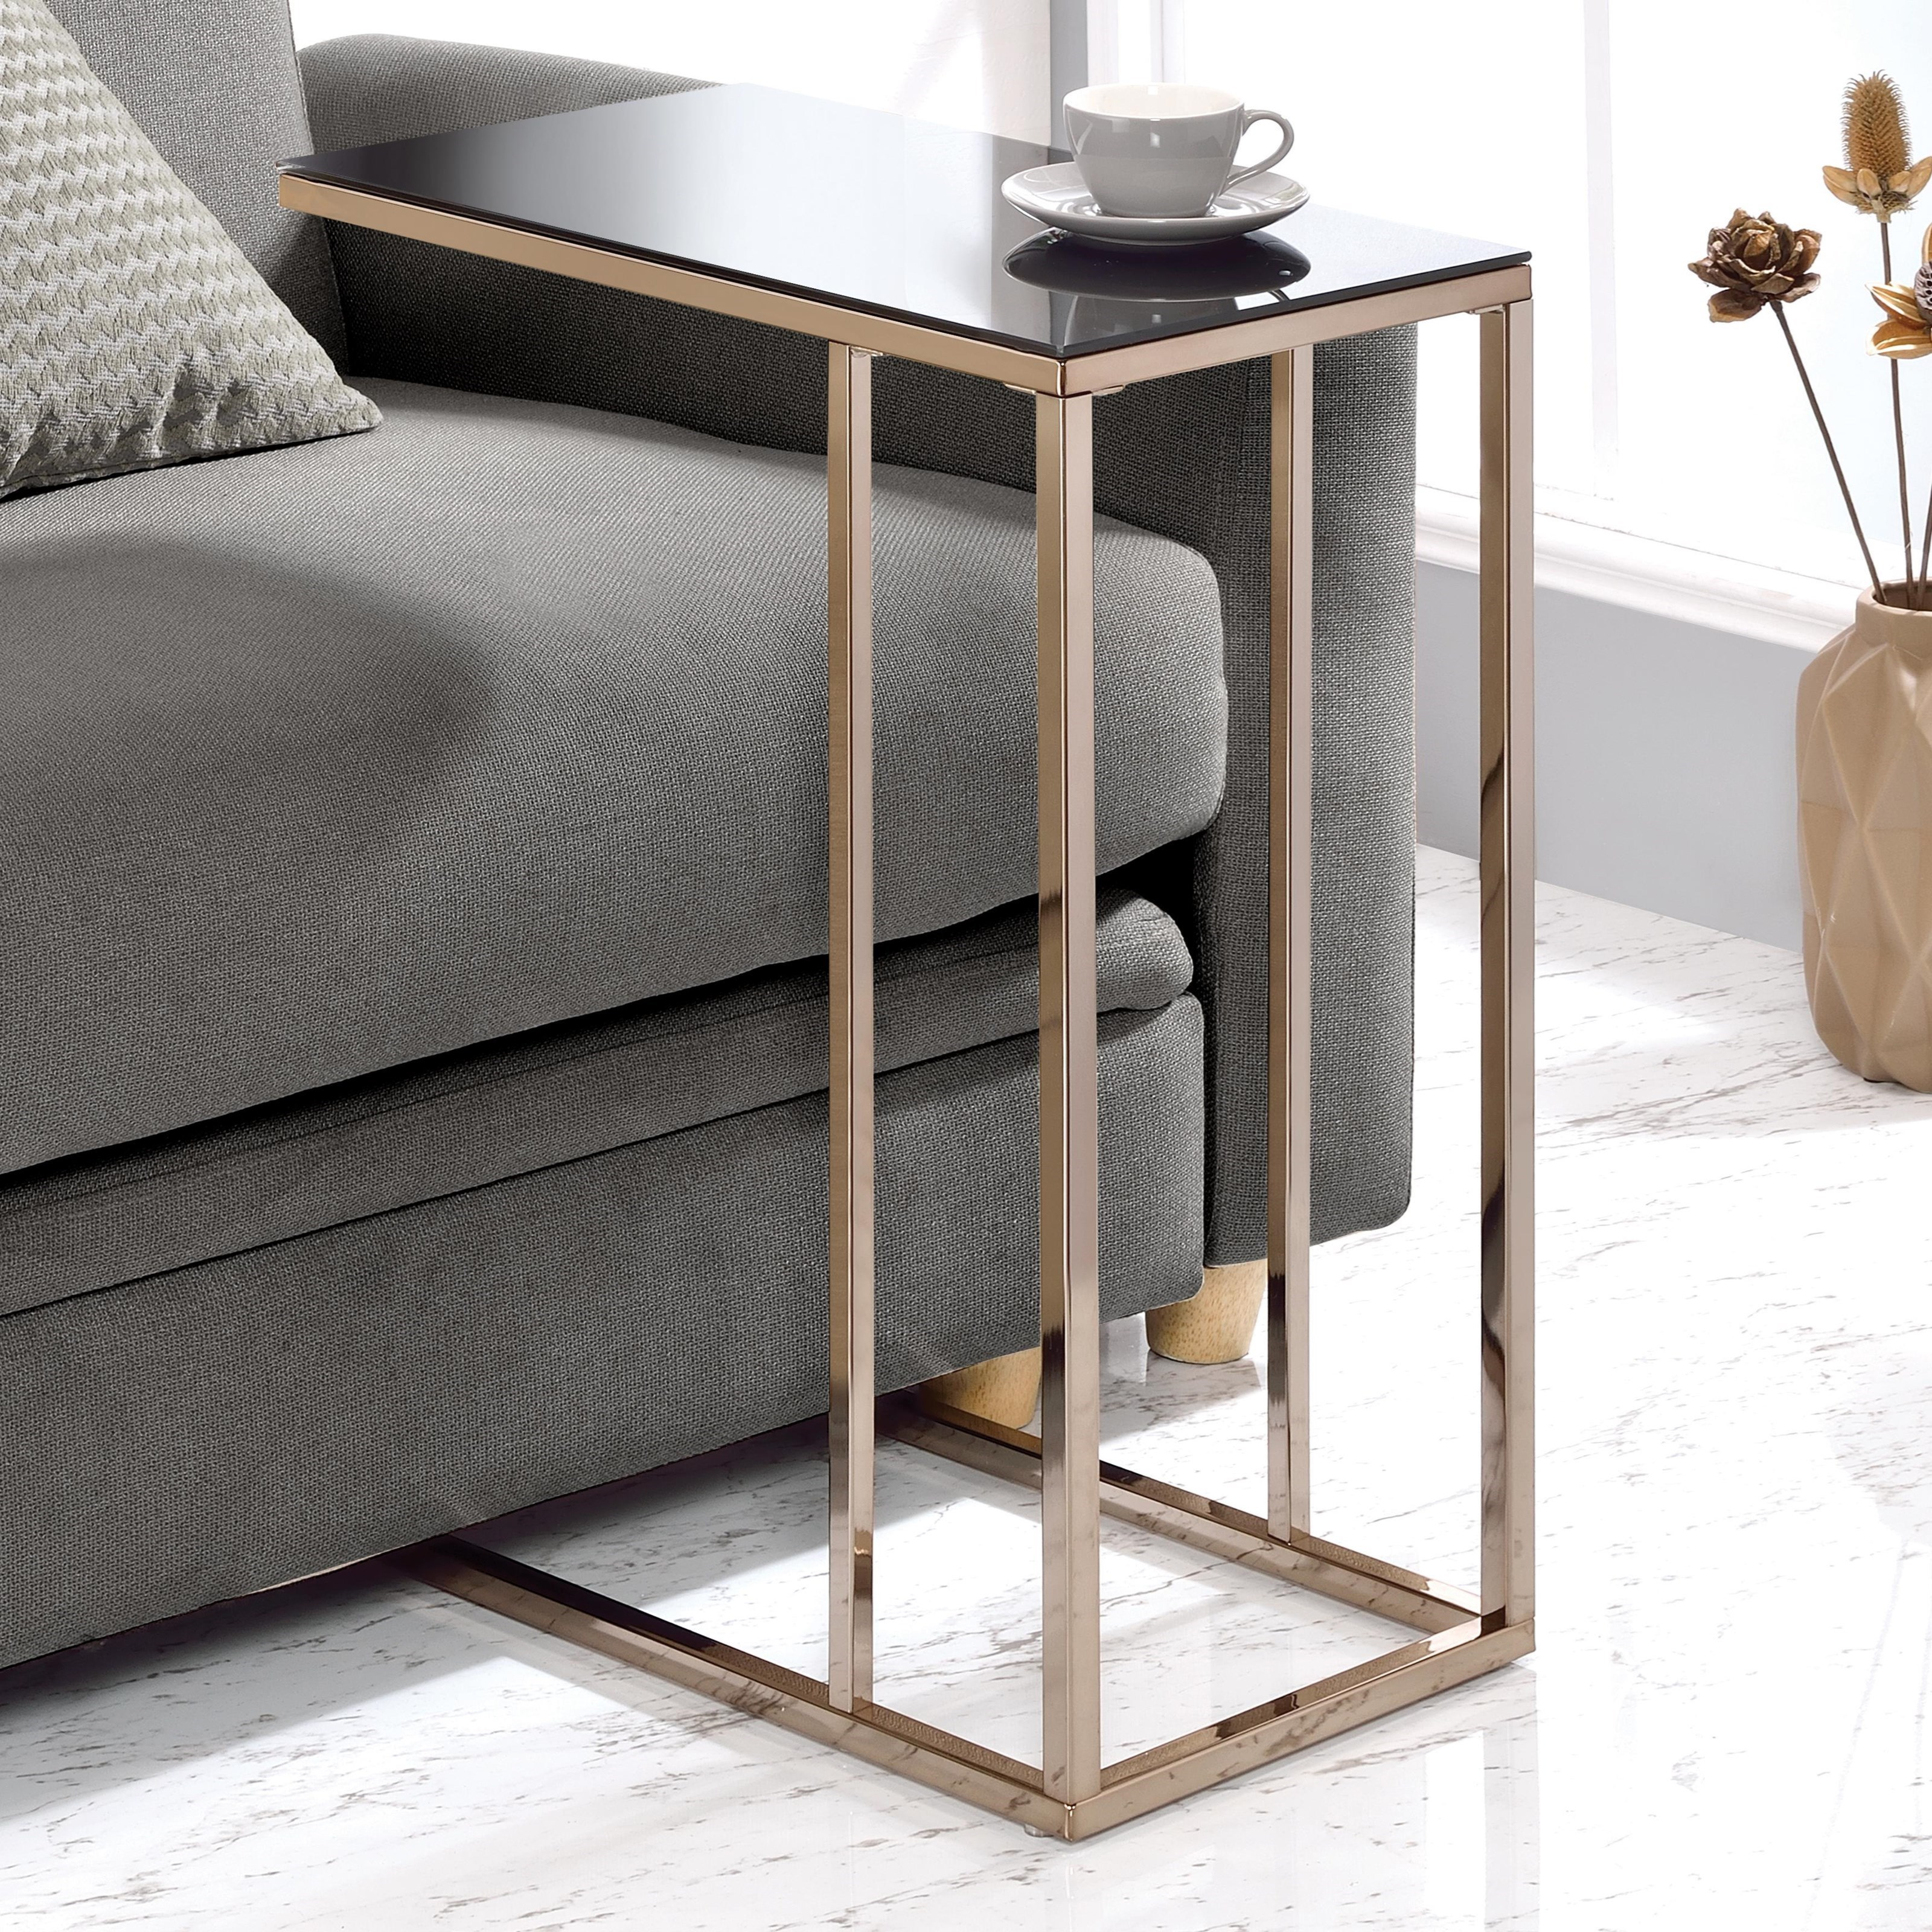 Coaster Accent Tables Snack Table - Item Number: 902928